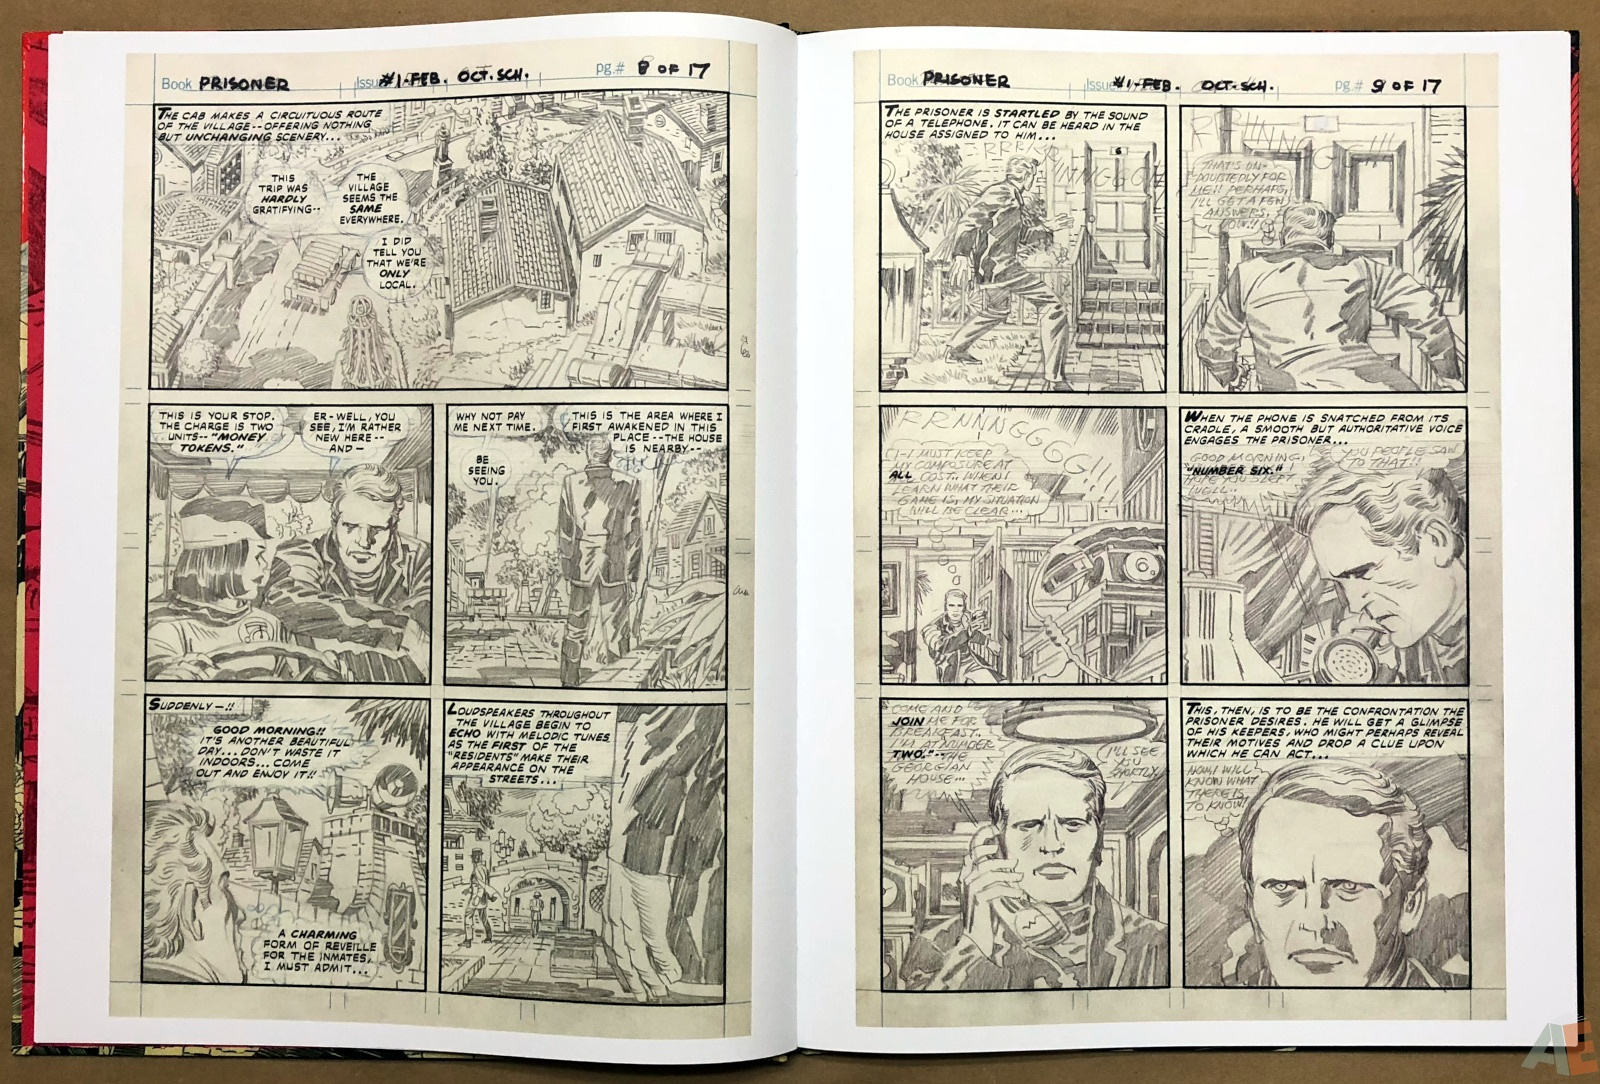 The Prisoner - Original Art Edition 12